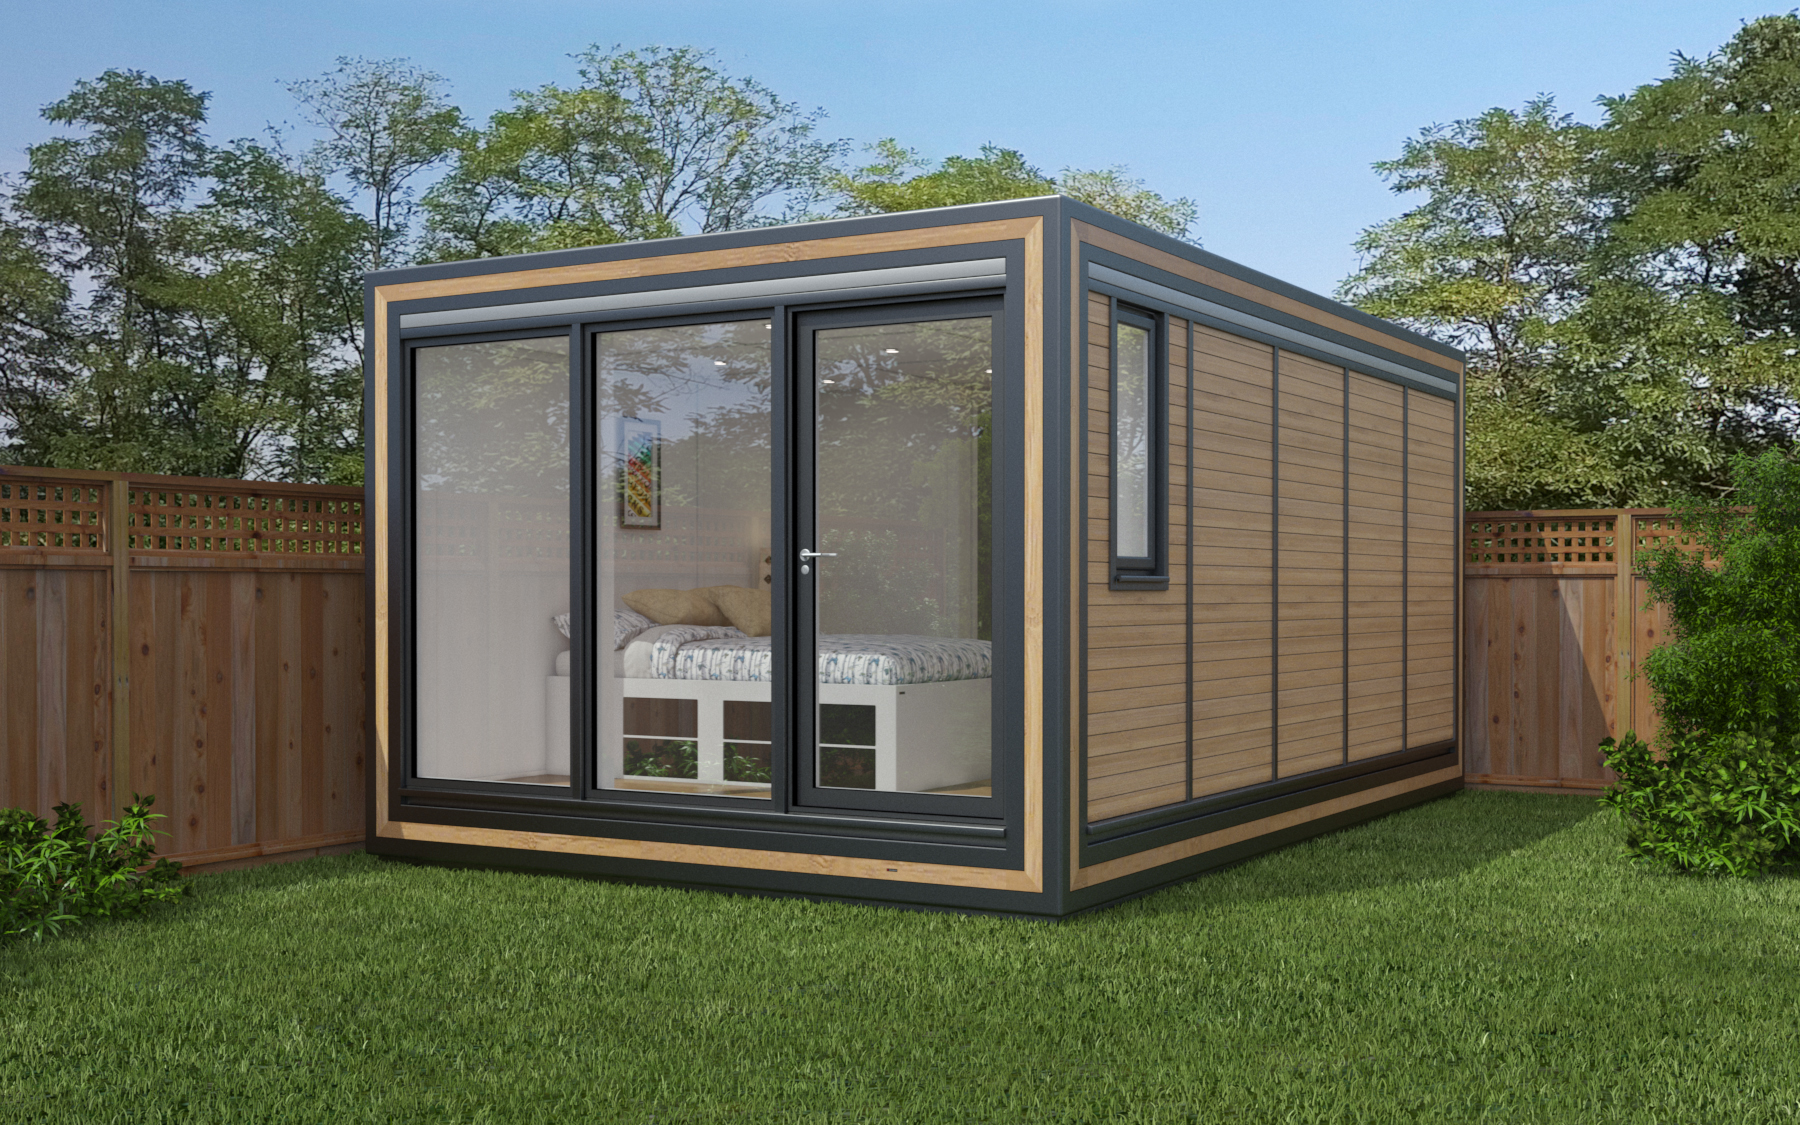 ZEDBOX 350  (3 x 5)  Internal Size: 3188 x 5330  External Size: 3658 x 5800  Bed Options: Single or Double  Kitchen Options: Micro Kitchen or Kitchen  Wet Room Options: Yes  Portico: No  Price:  £31,000    Optional Extras    Request Zedbox Catalogue